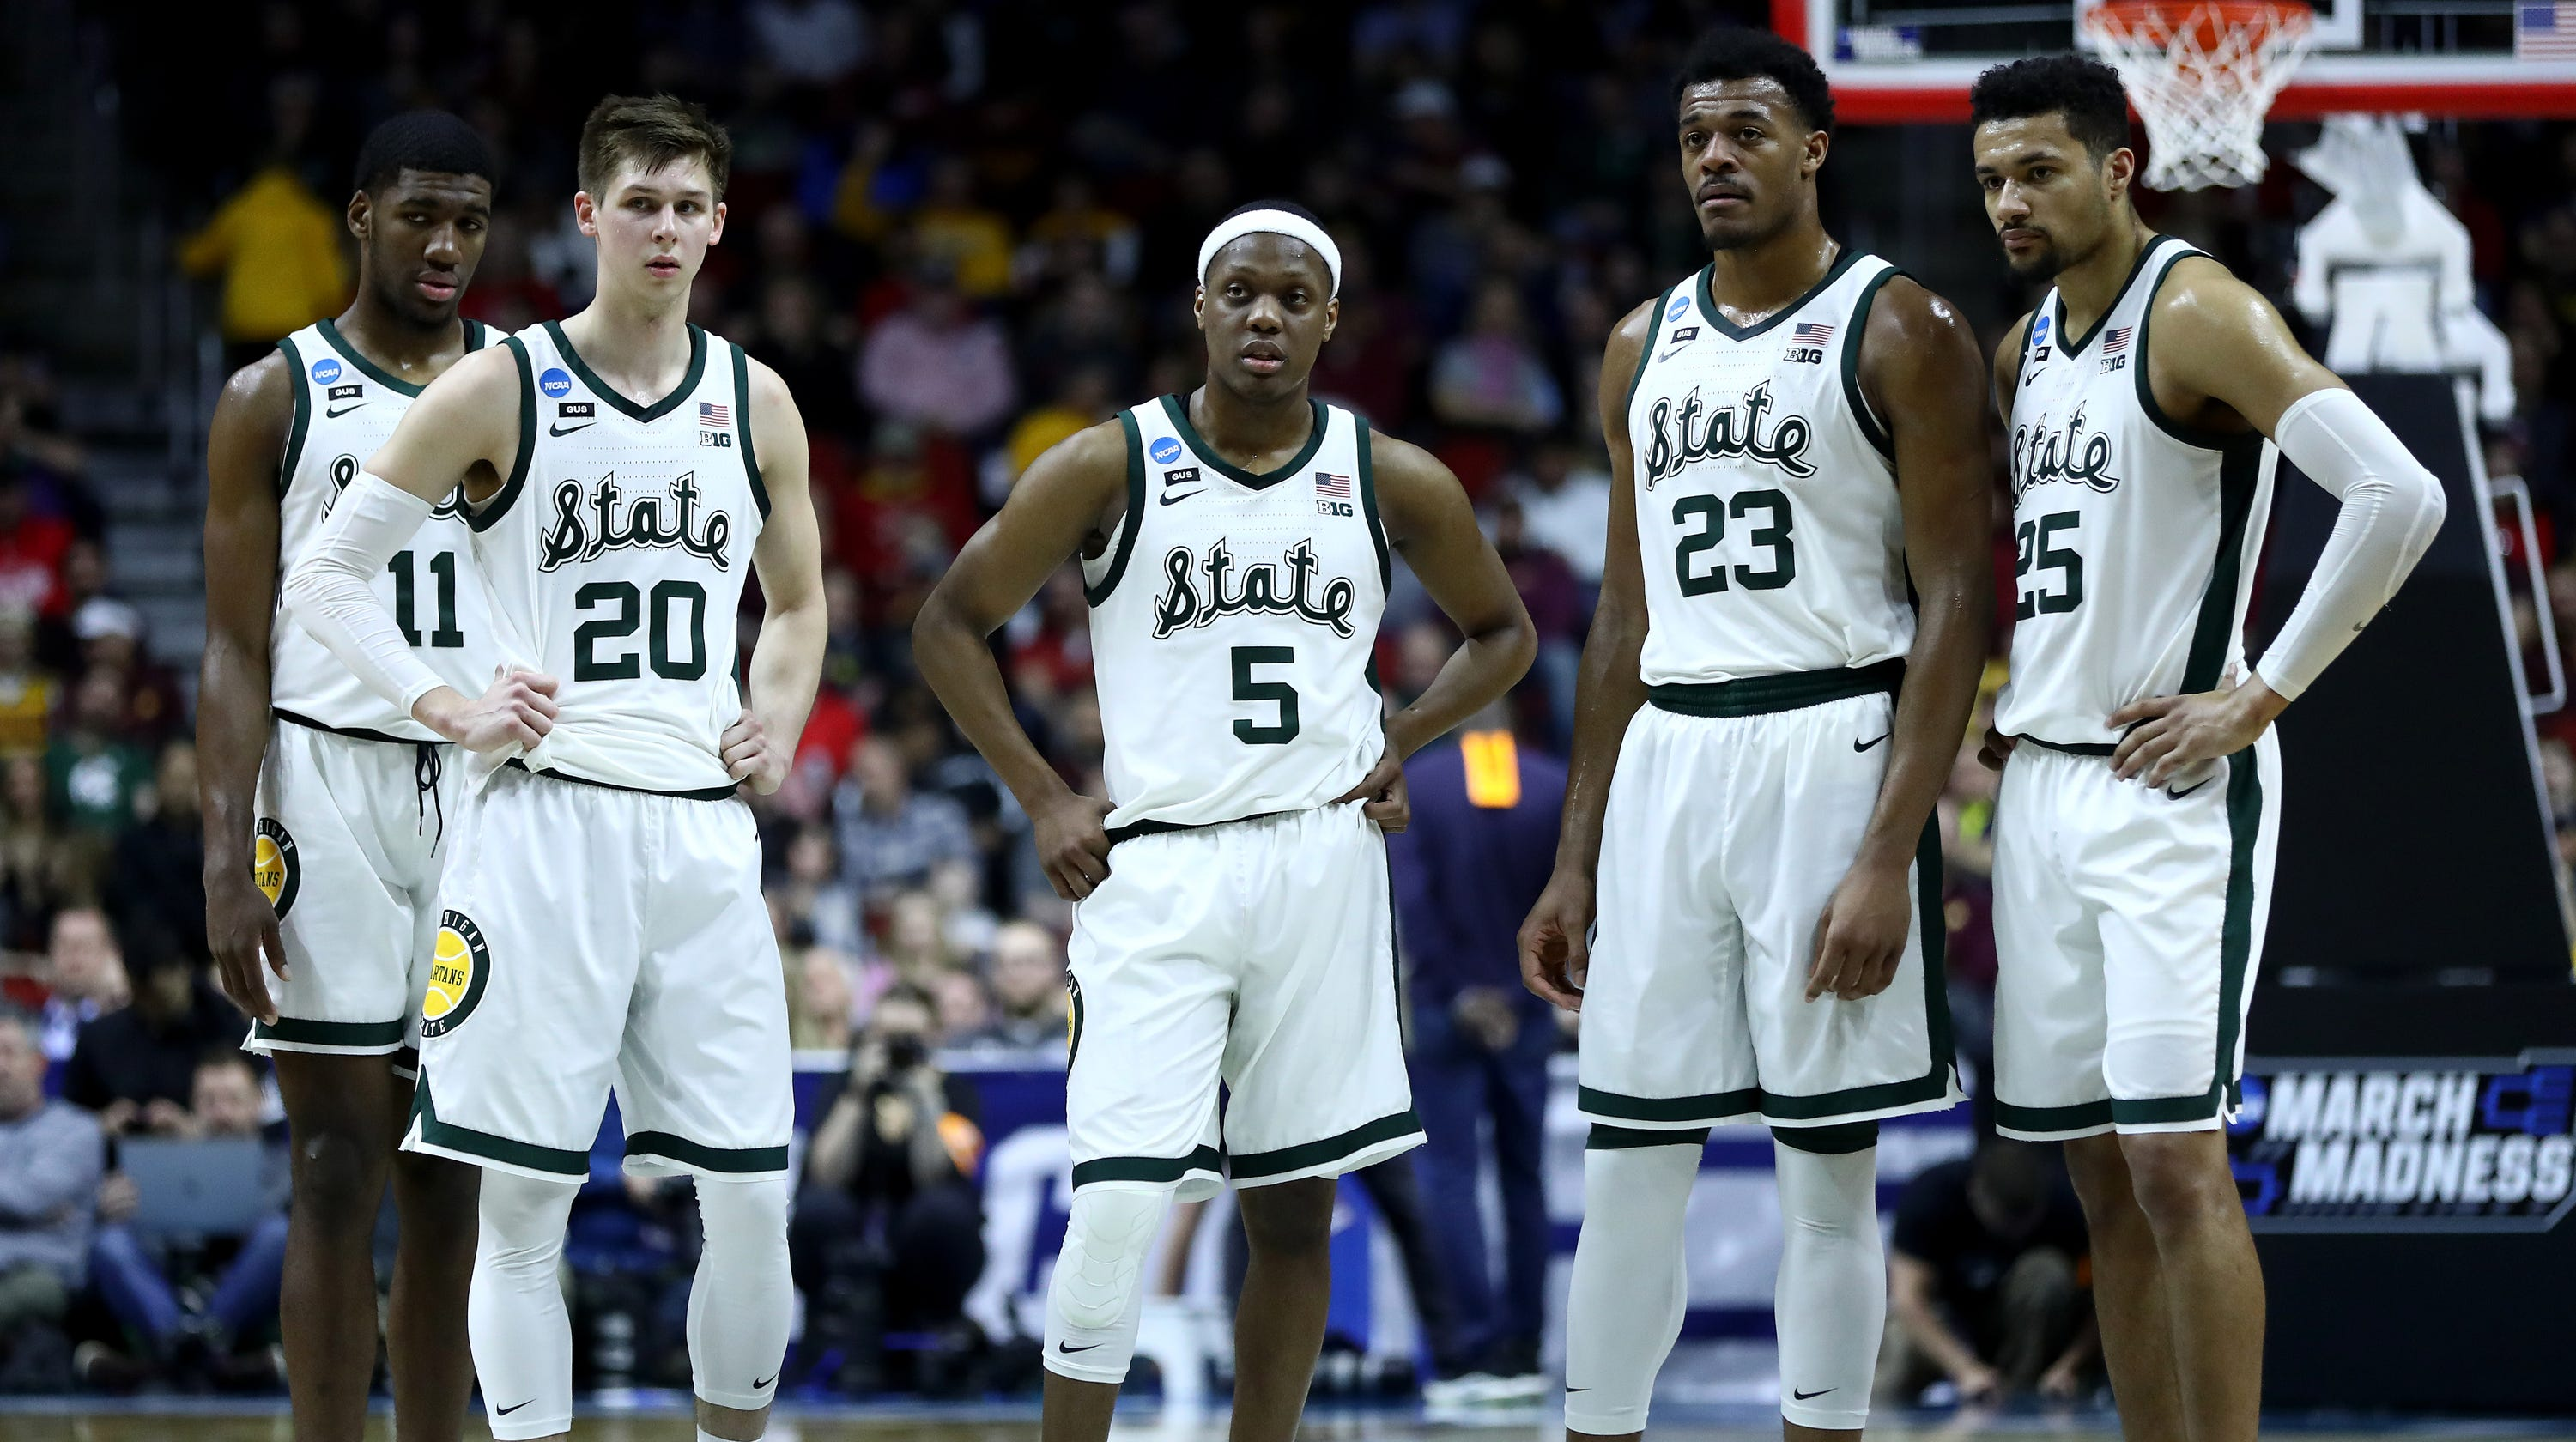 Michigan State basketball's Final Four run was driven by